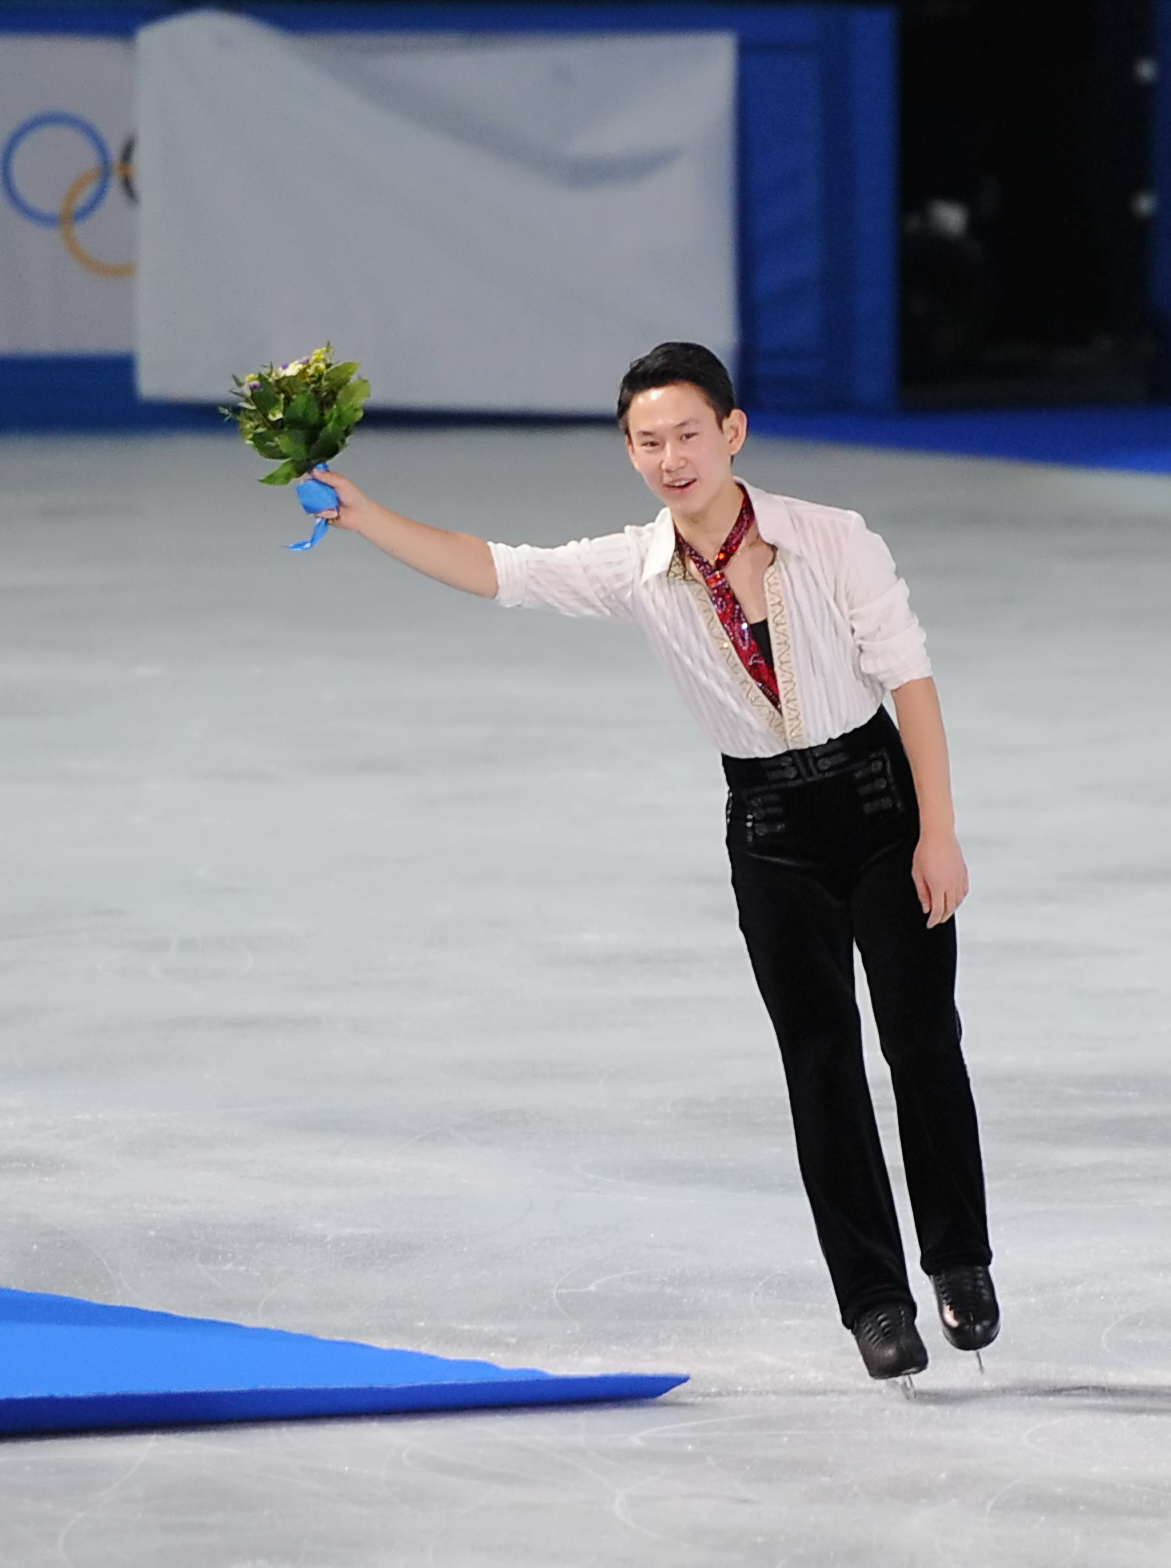 Ten Wins Kazakhstans First Ever Medal In Olympic Figure Skating The Astana Times